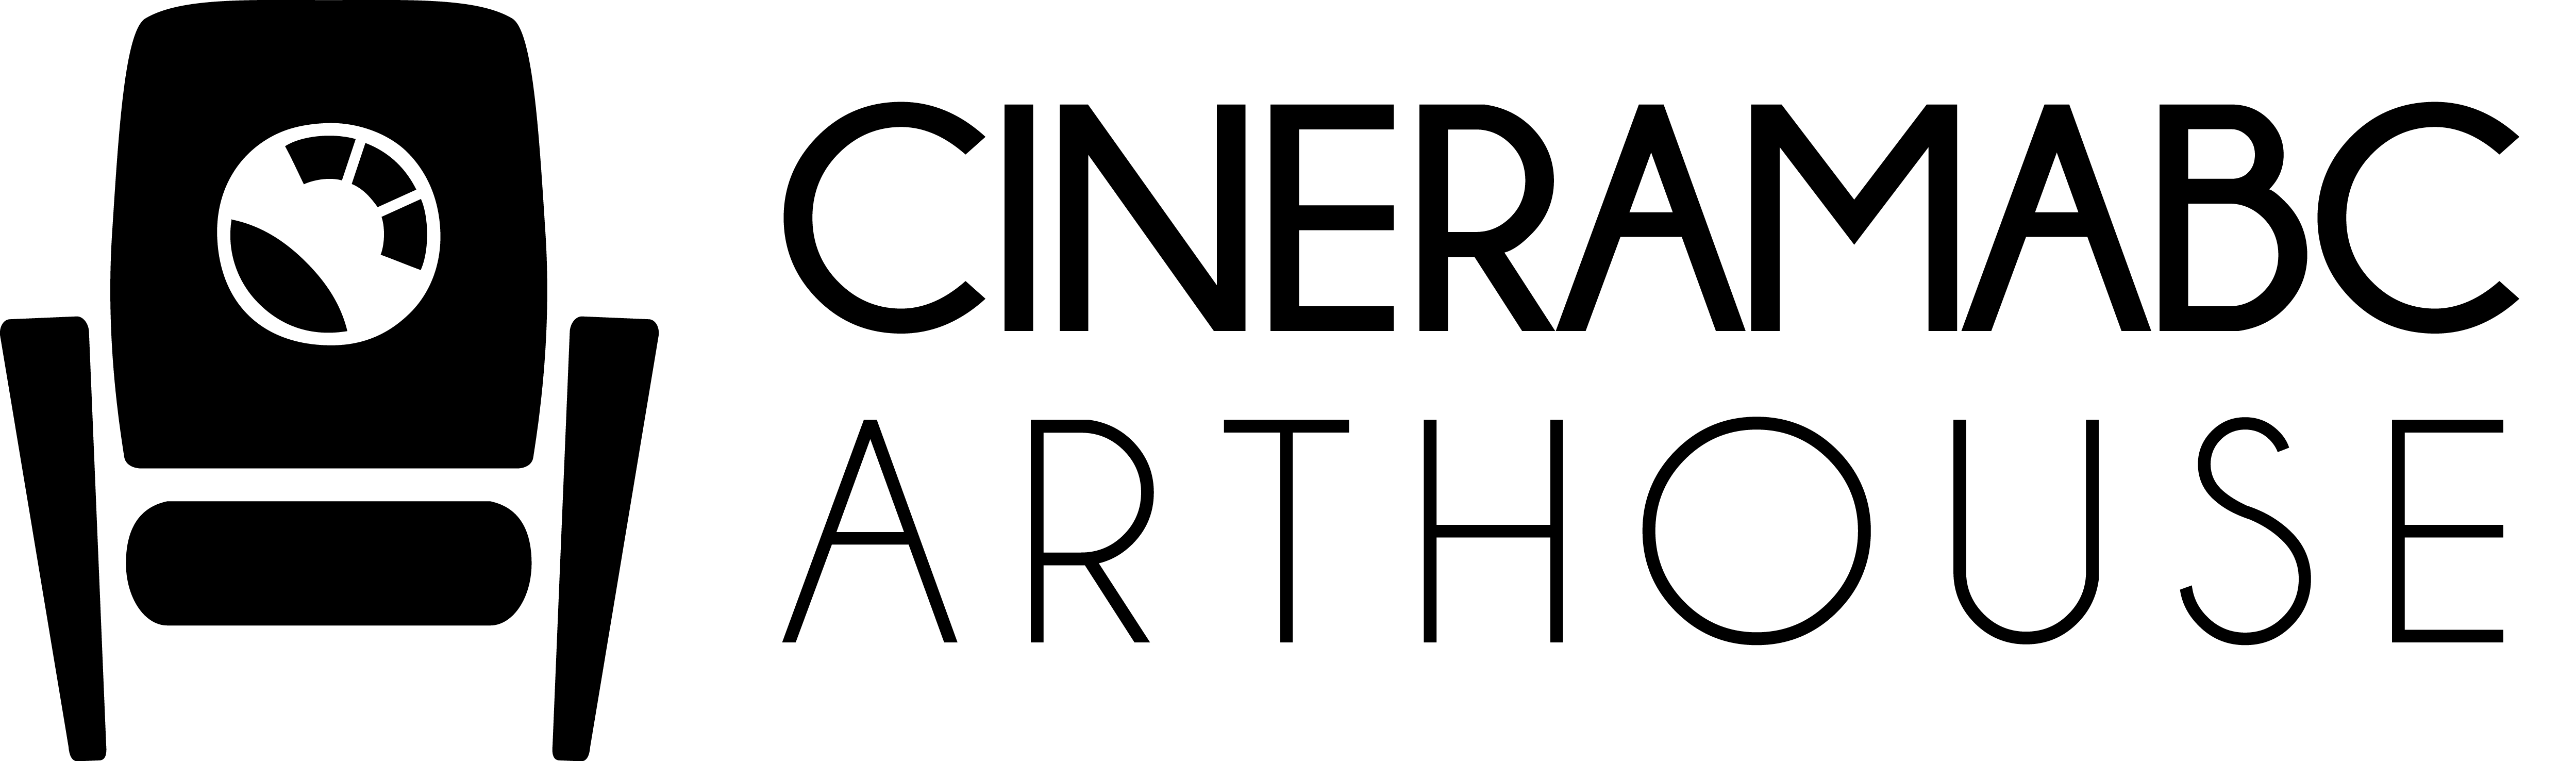 Cineramabc Arthouse